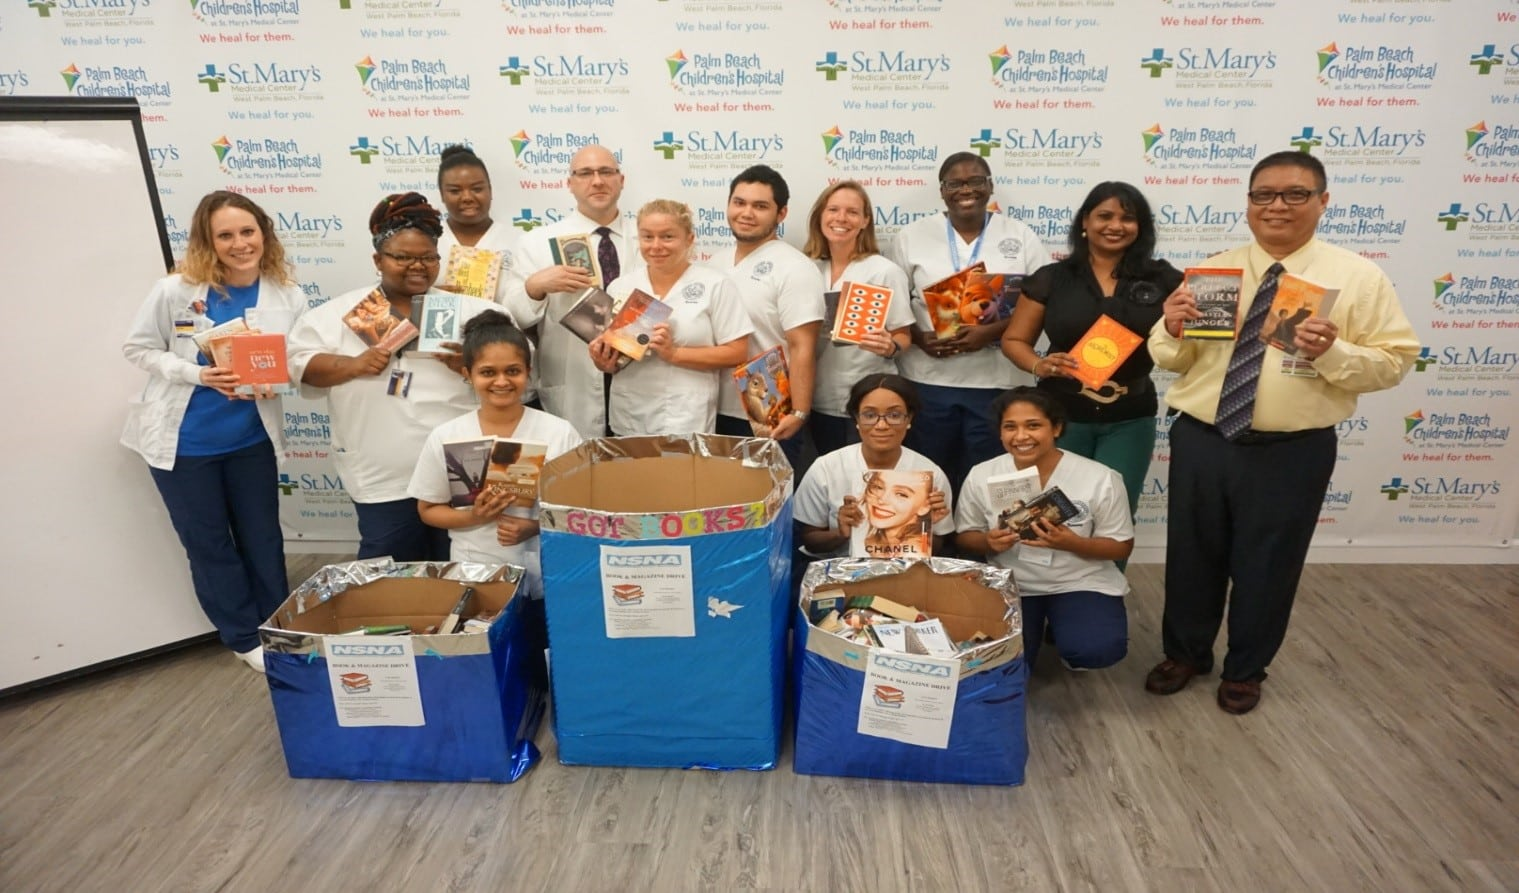 West Palm Beach Campus Collects Books for the National Student Nursing Association